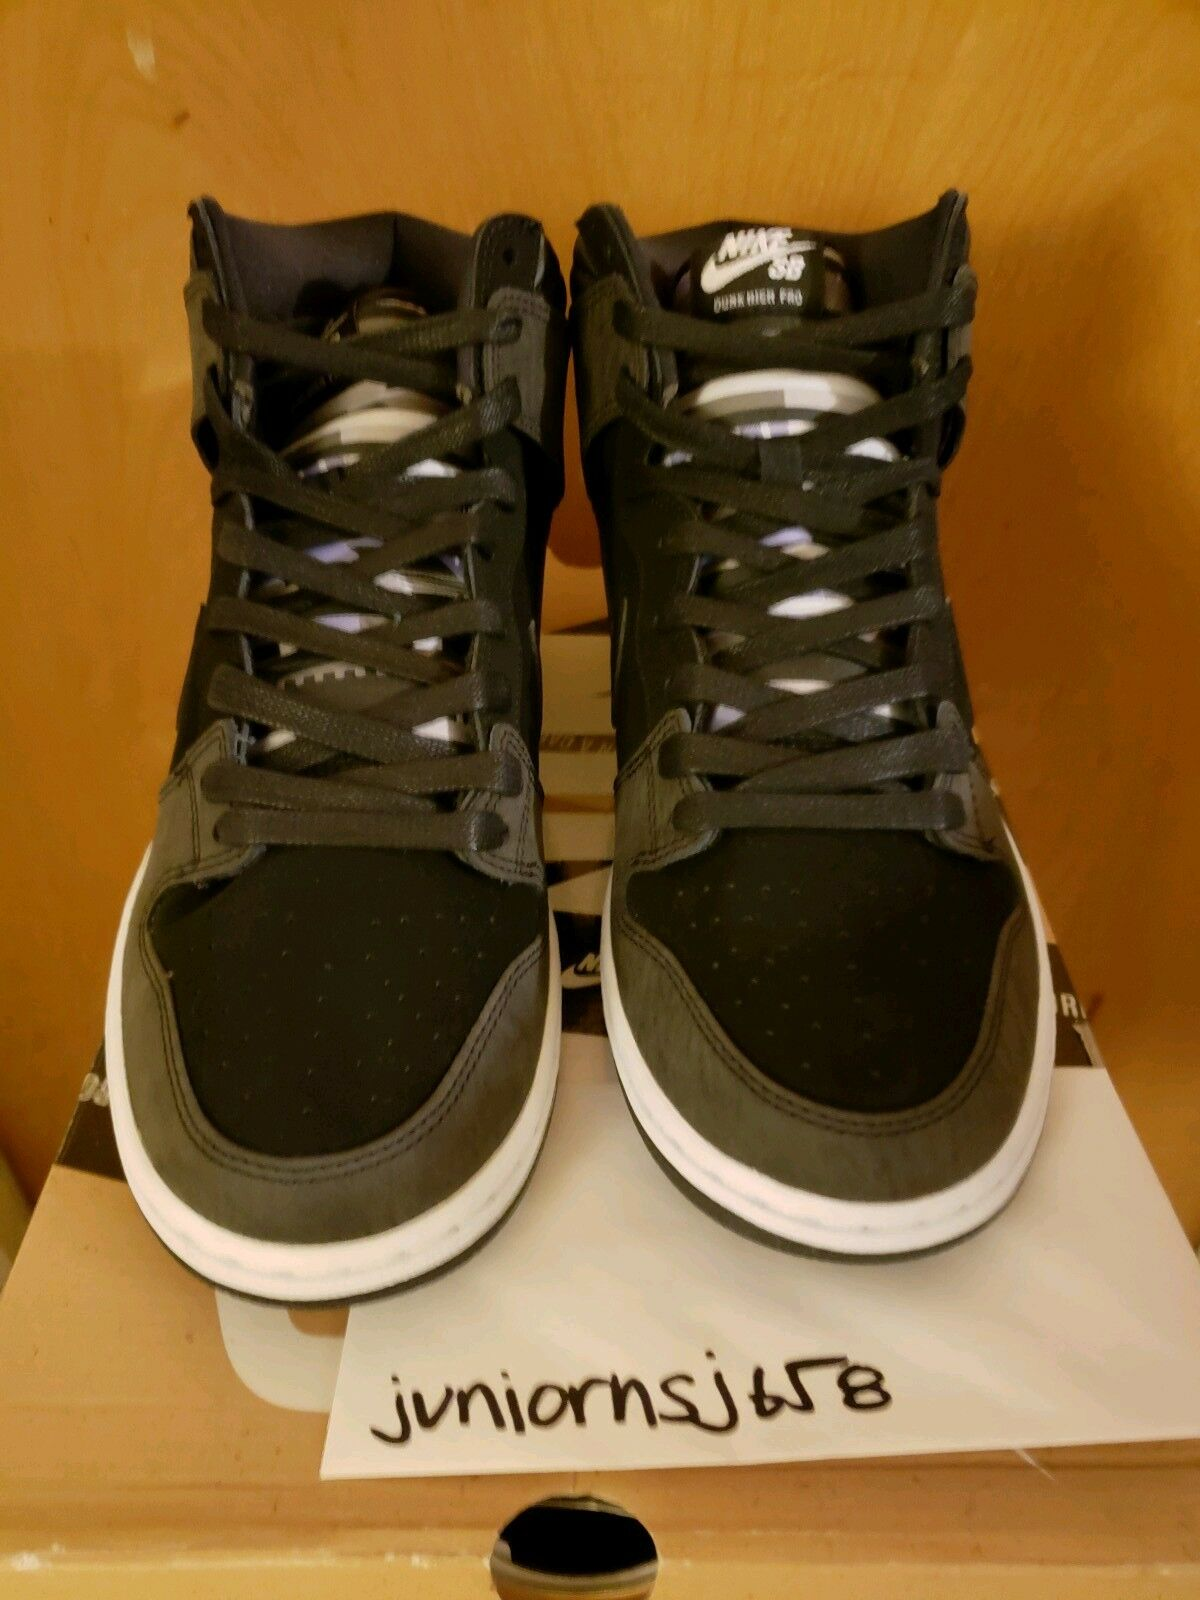 Nike SB Dunk High Premium Civilist Sz 10